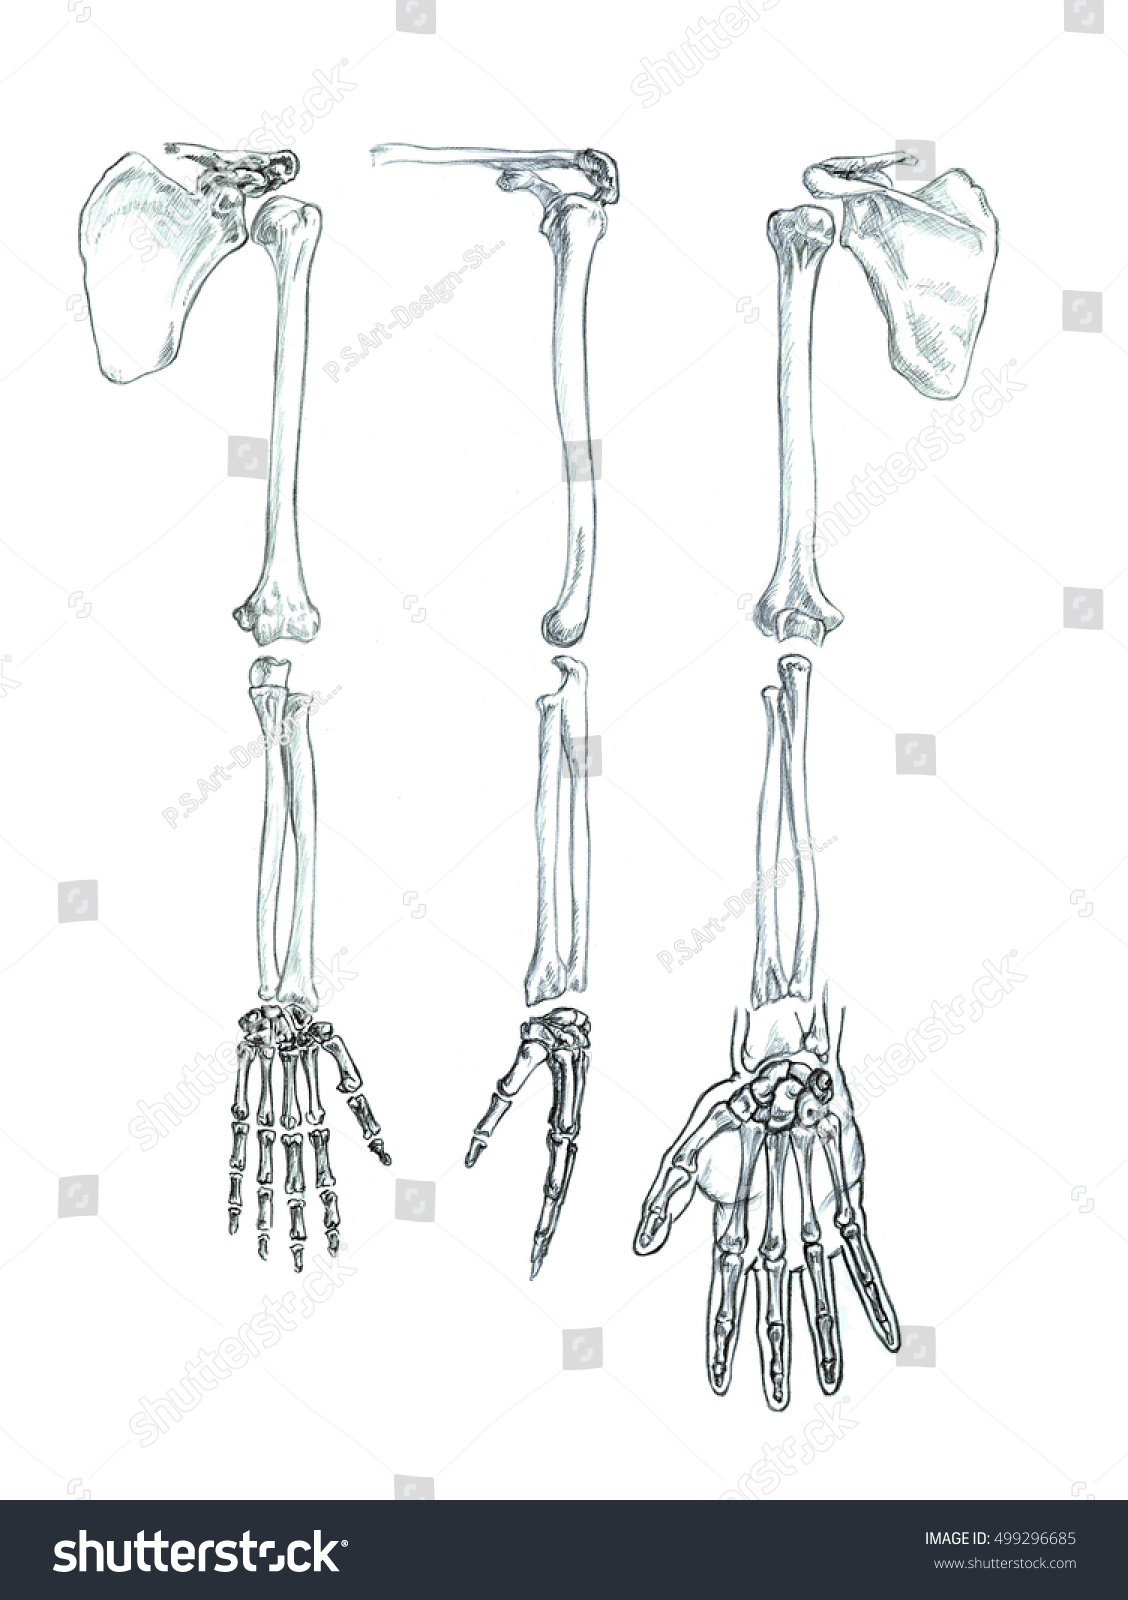 Bones Upper Extremity Hand Drawn Medical Stock Illustration